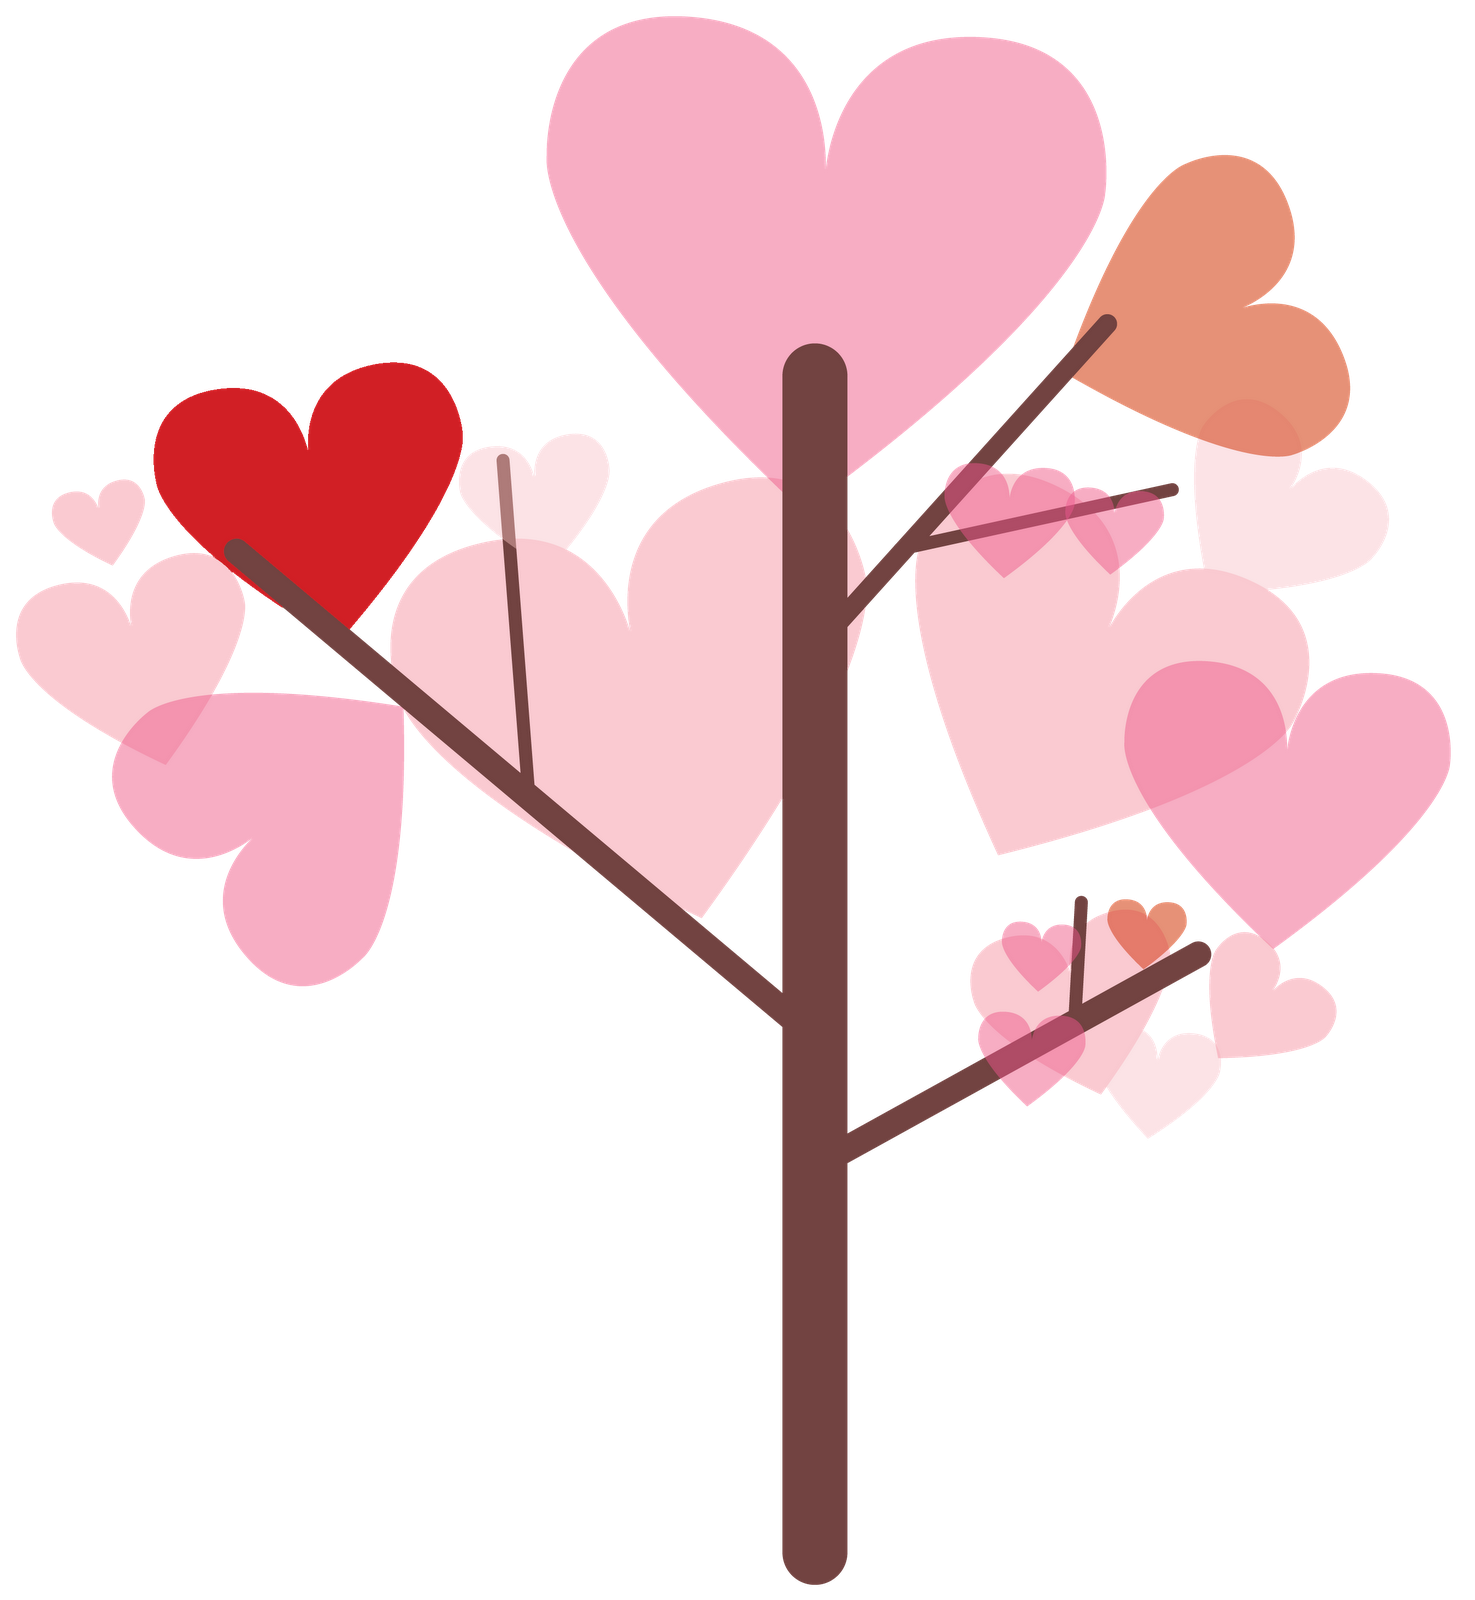 Love Clipart - PNG Image #72 - Love Clipart PNG